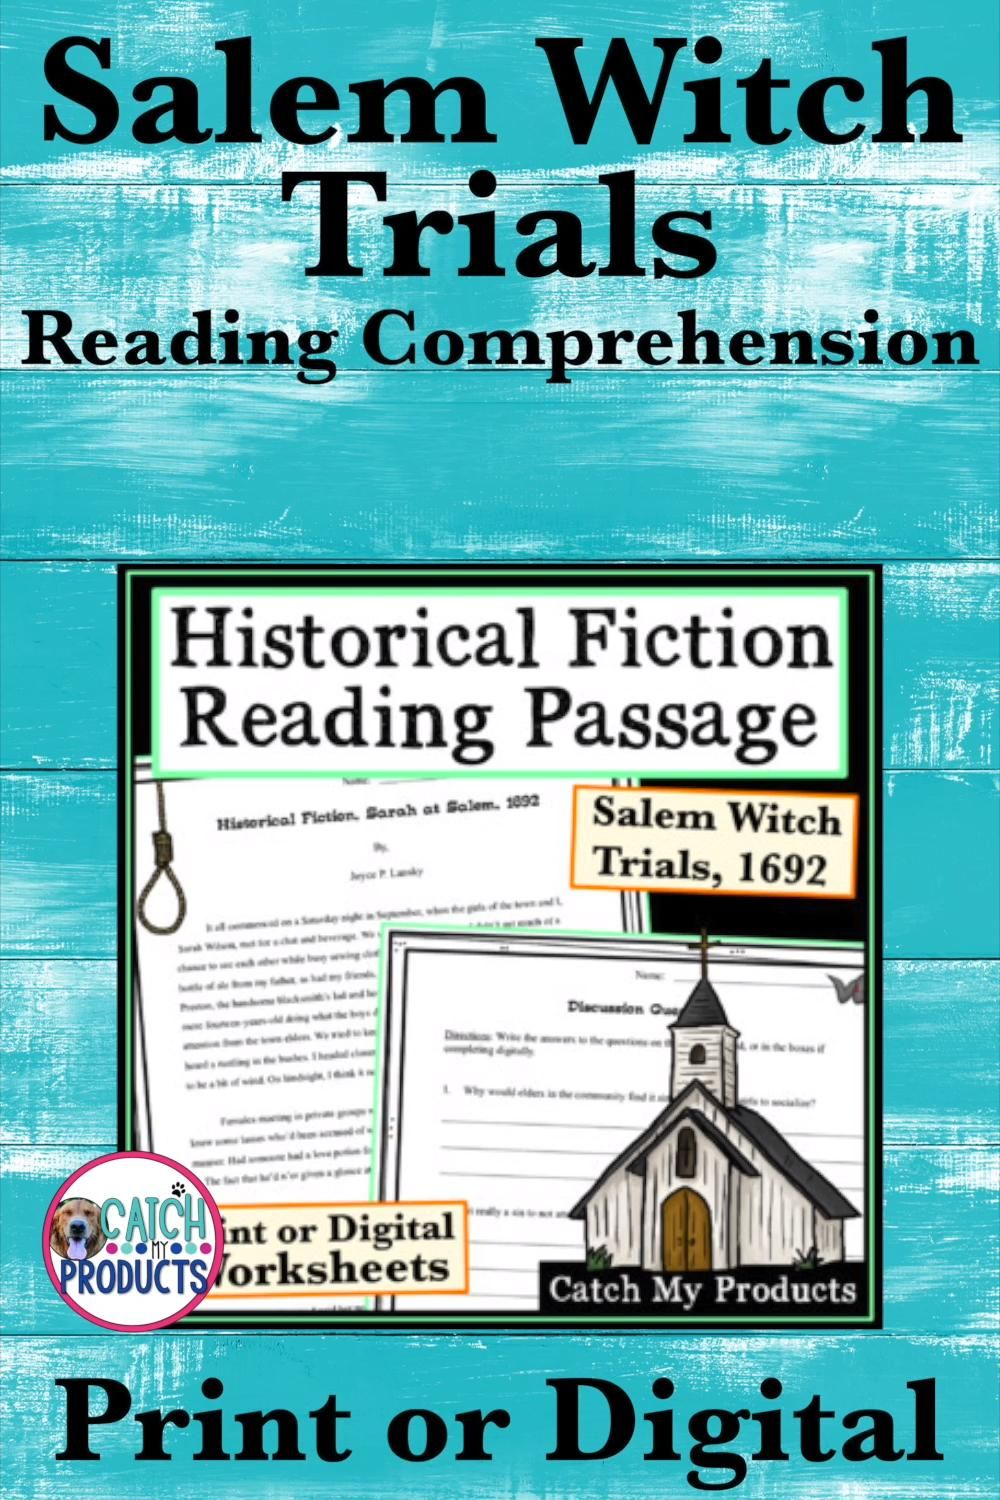 Historical Fiction Reading Comprehension For Middle School Salem Witch Trials Video Video In 2021 Middle School Reading Comprehension Reading Comprehension Teaching Close Reading [ 1500 x 1000 Pixel ]